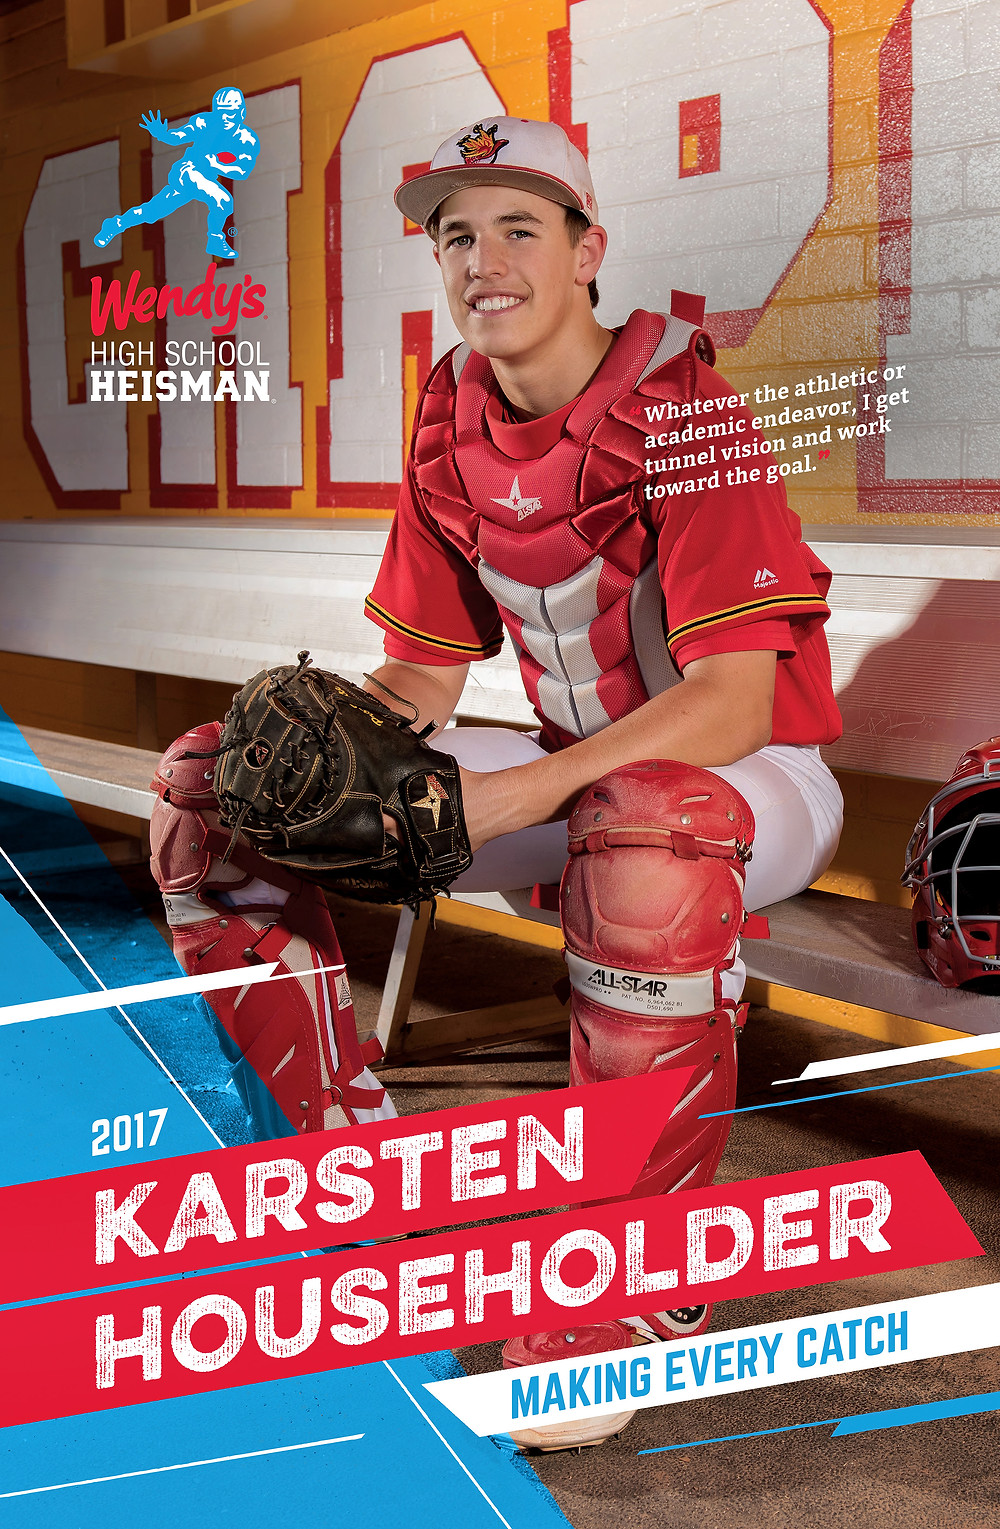 Karsten Householder Student Athlete Poster